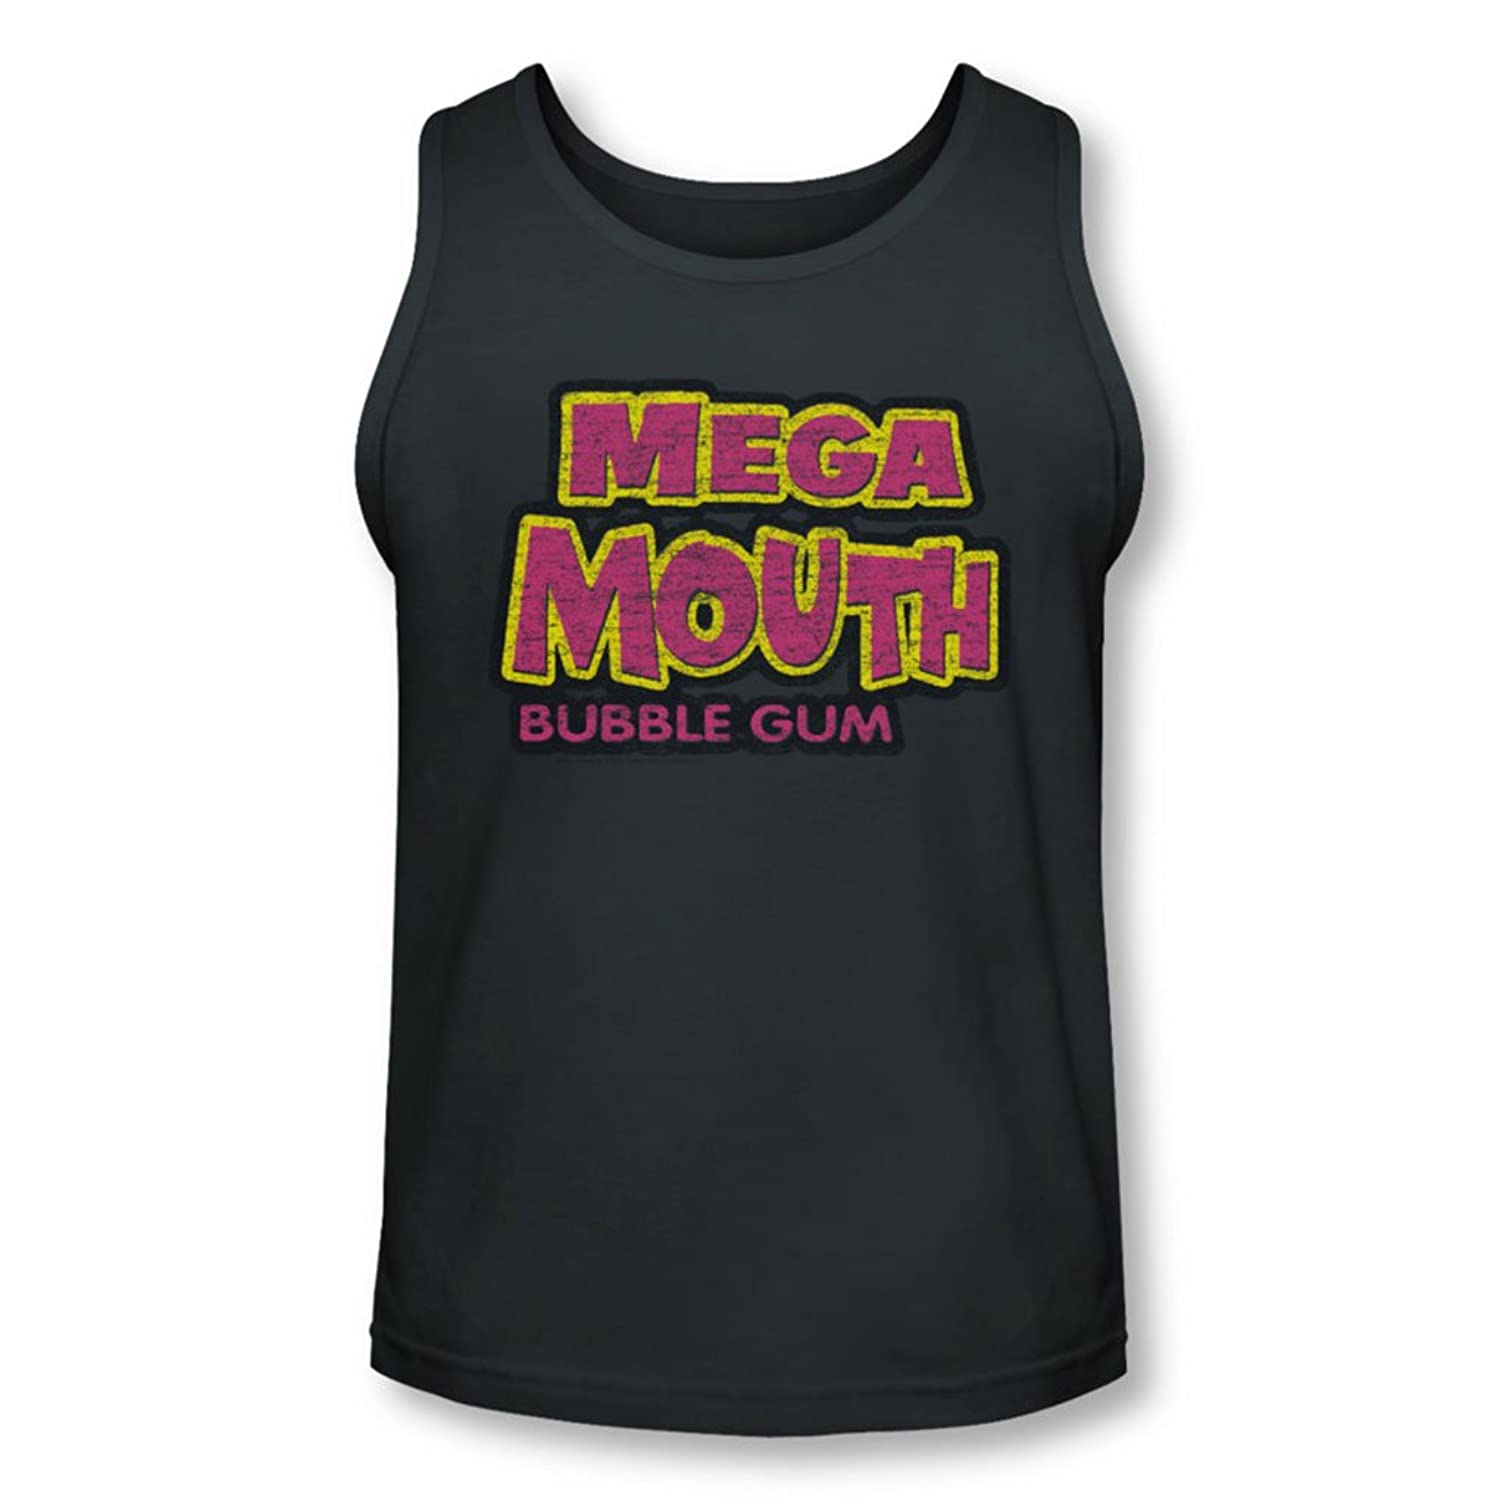 Dubble Bubble - Mens Mega Mouth Tank-Top